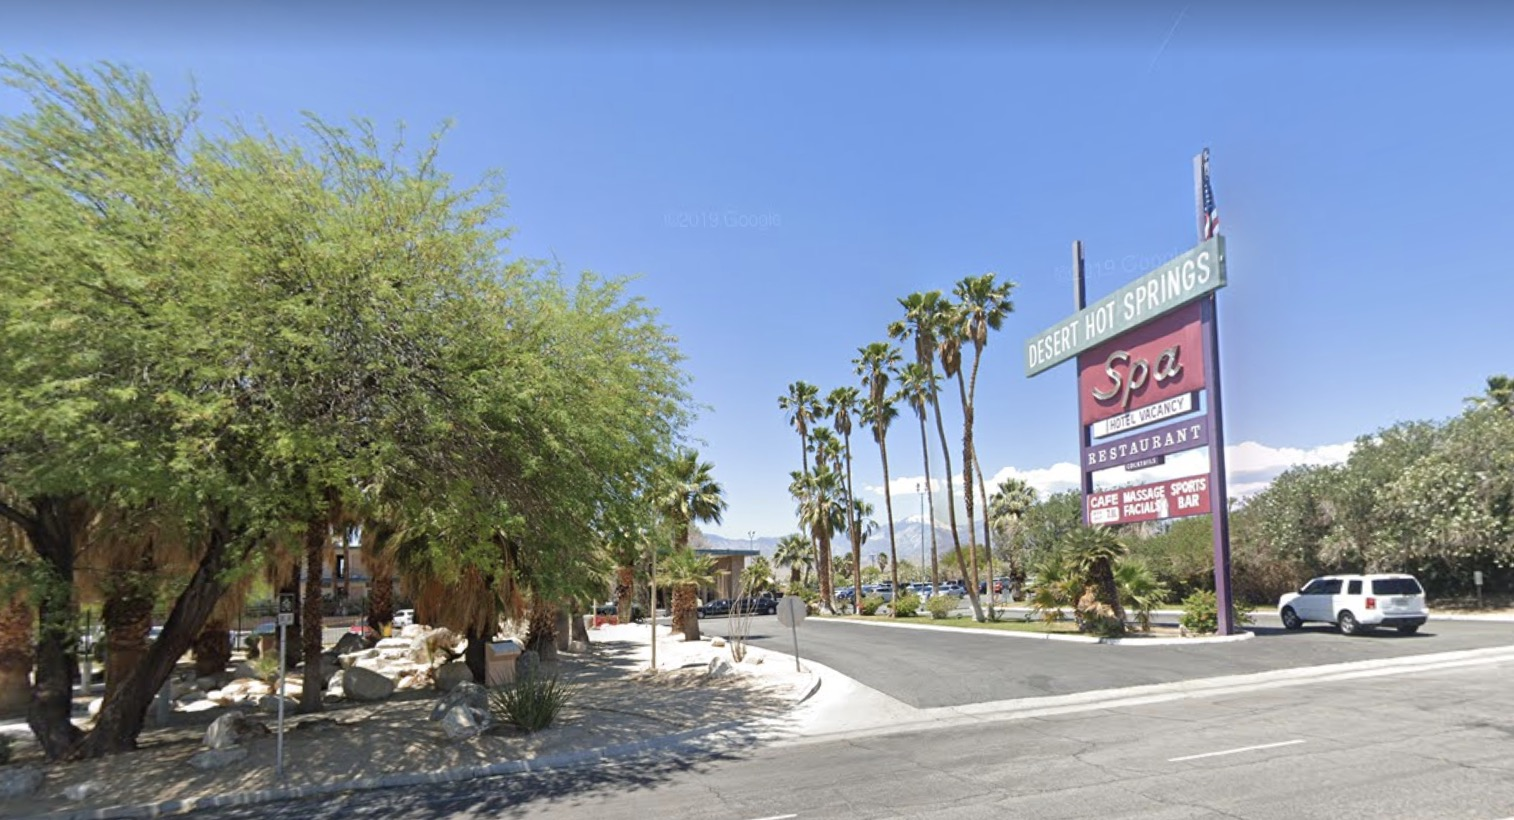 Officials believe fire at Desert Hot Springs Spa Hotel was 'intentionally set'